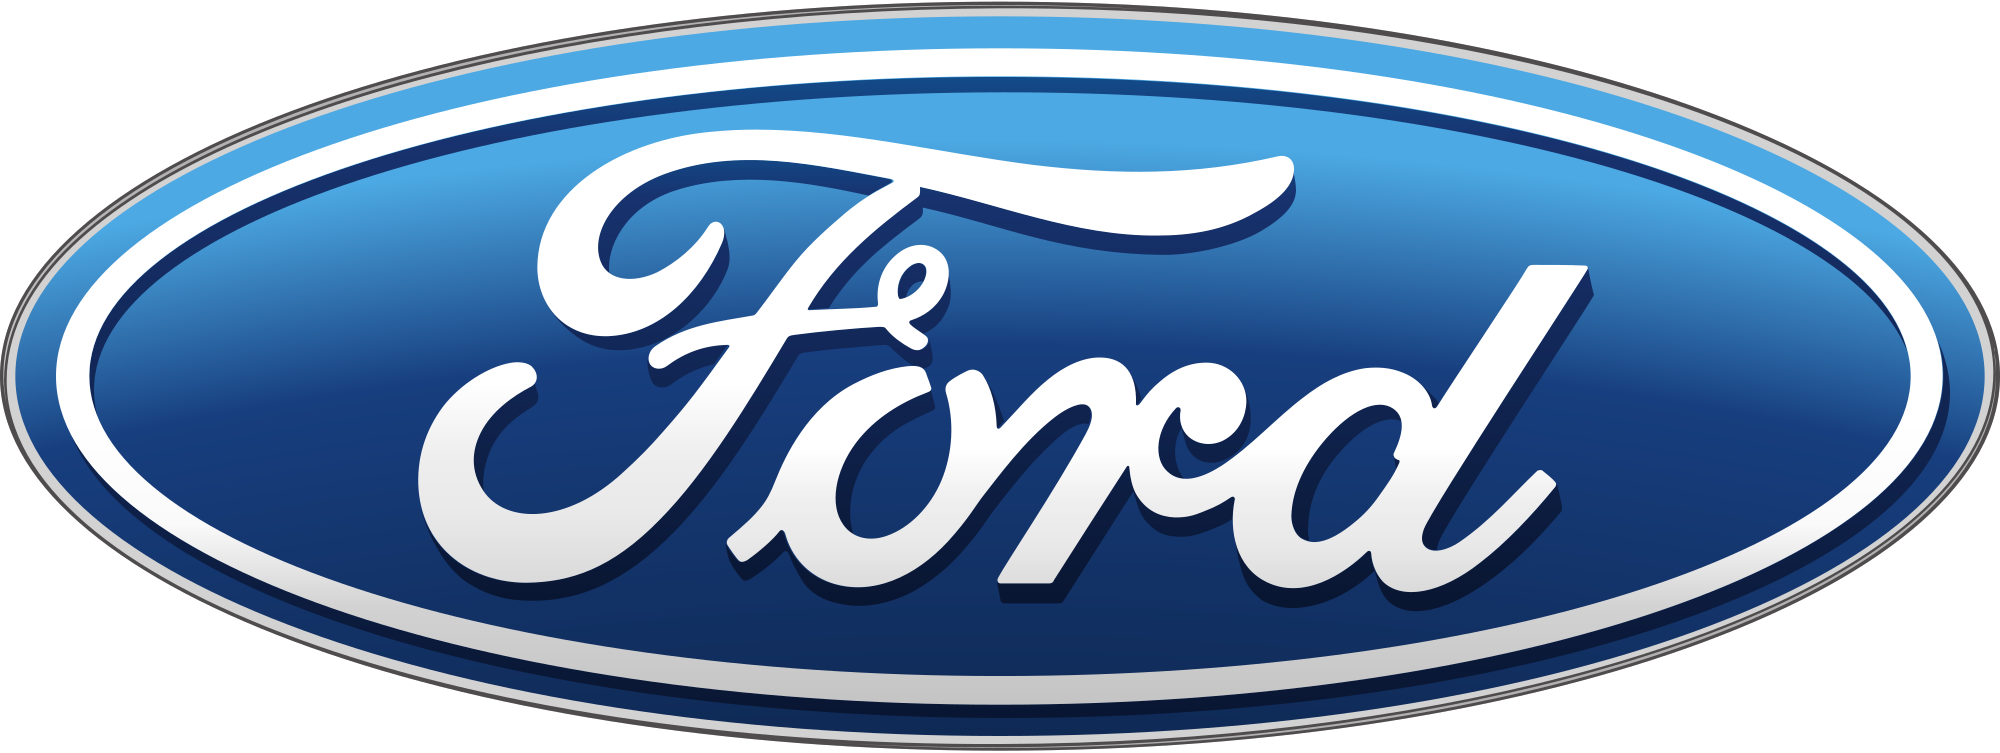 Ford motor company logo png. File svg wikimedia commons